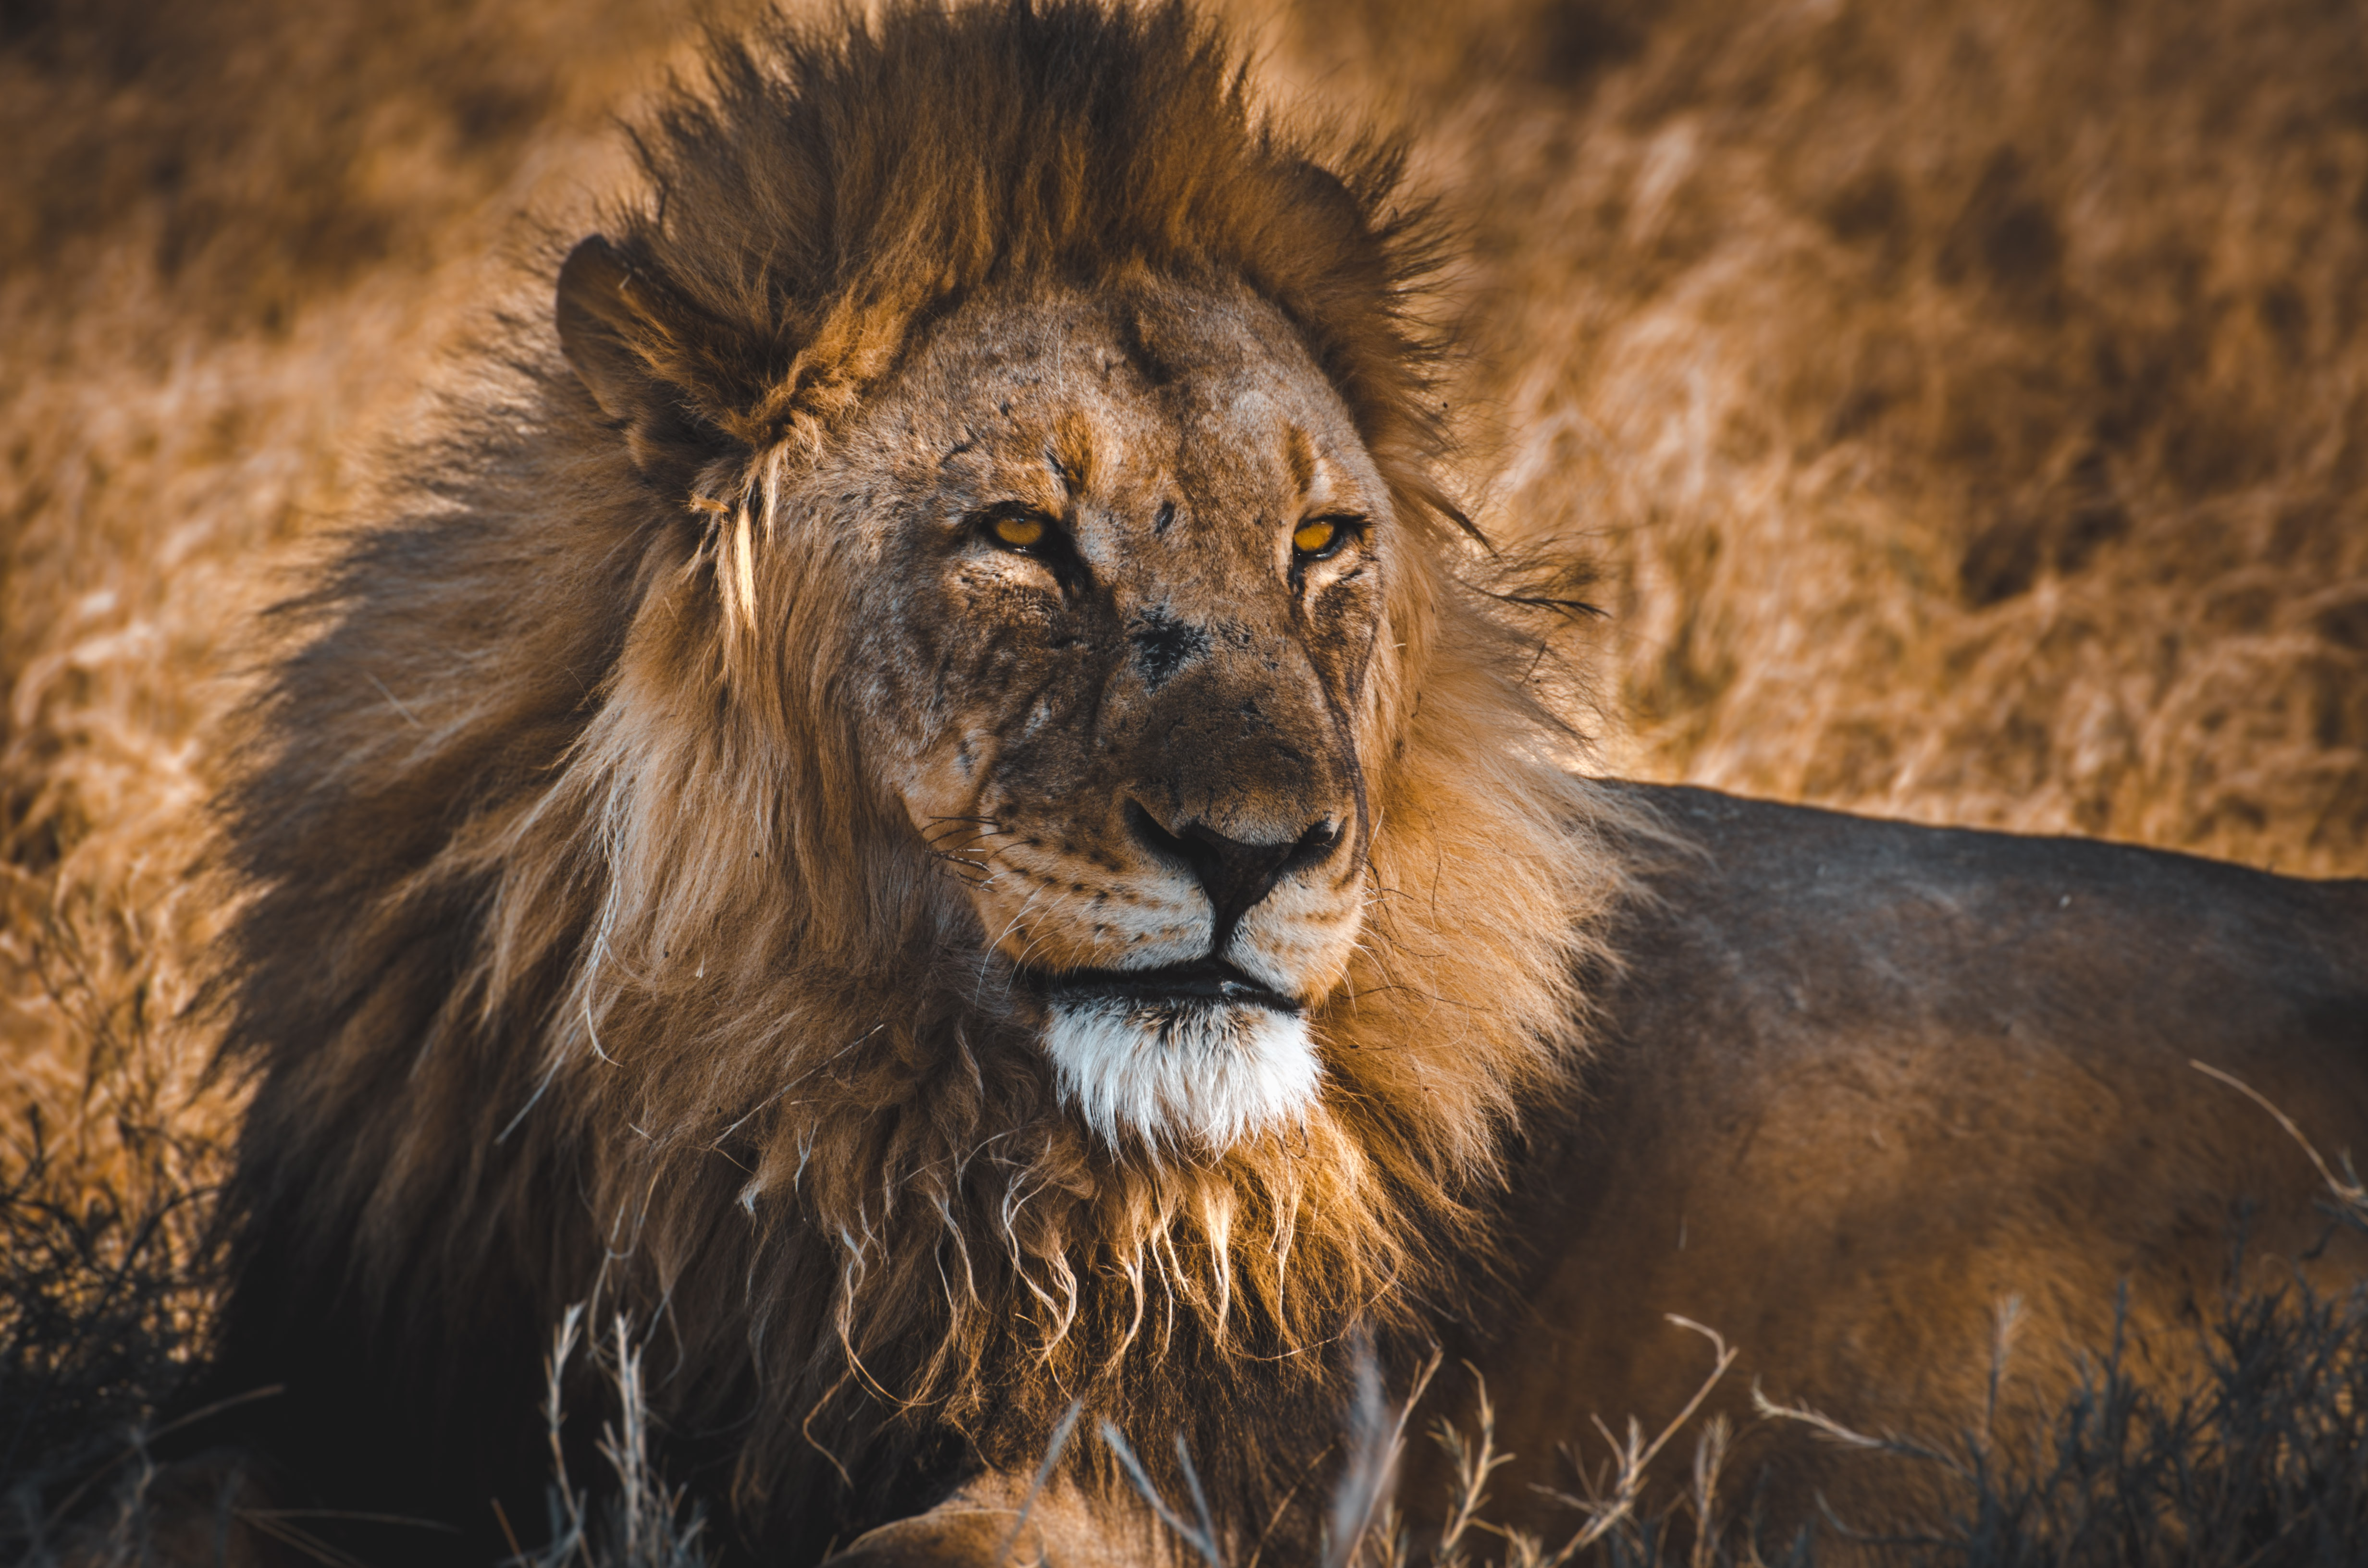 108706 download wallpaper Animals, Lion, Predator, Big Cat, King Of Beasts, King Of The Beasts, Wildlife screensavers and pictures for free